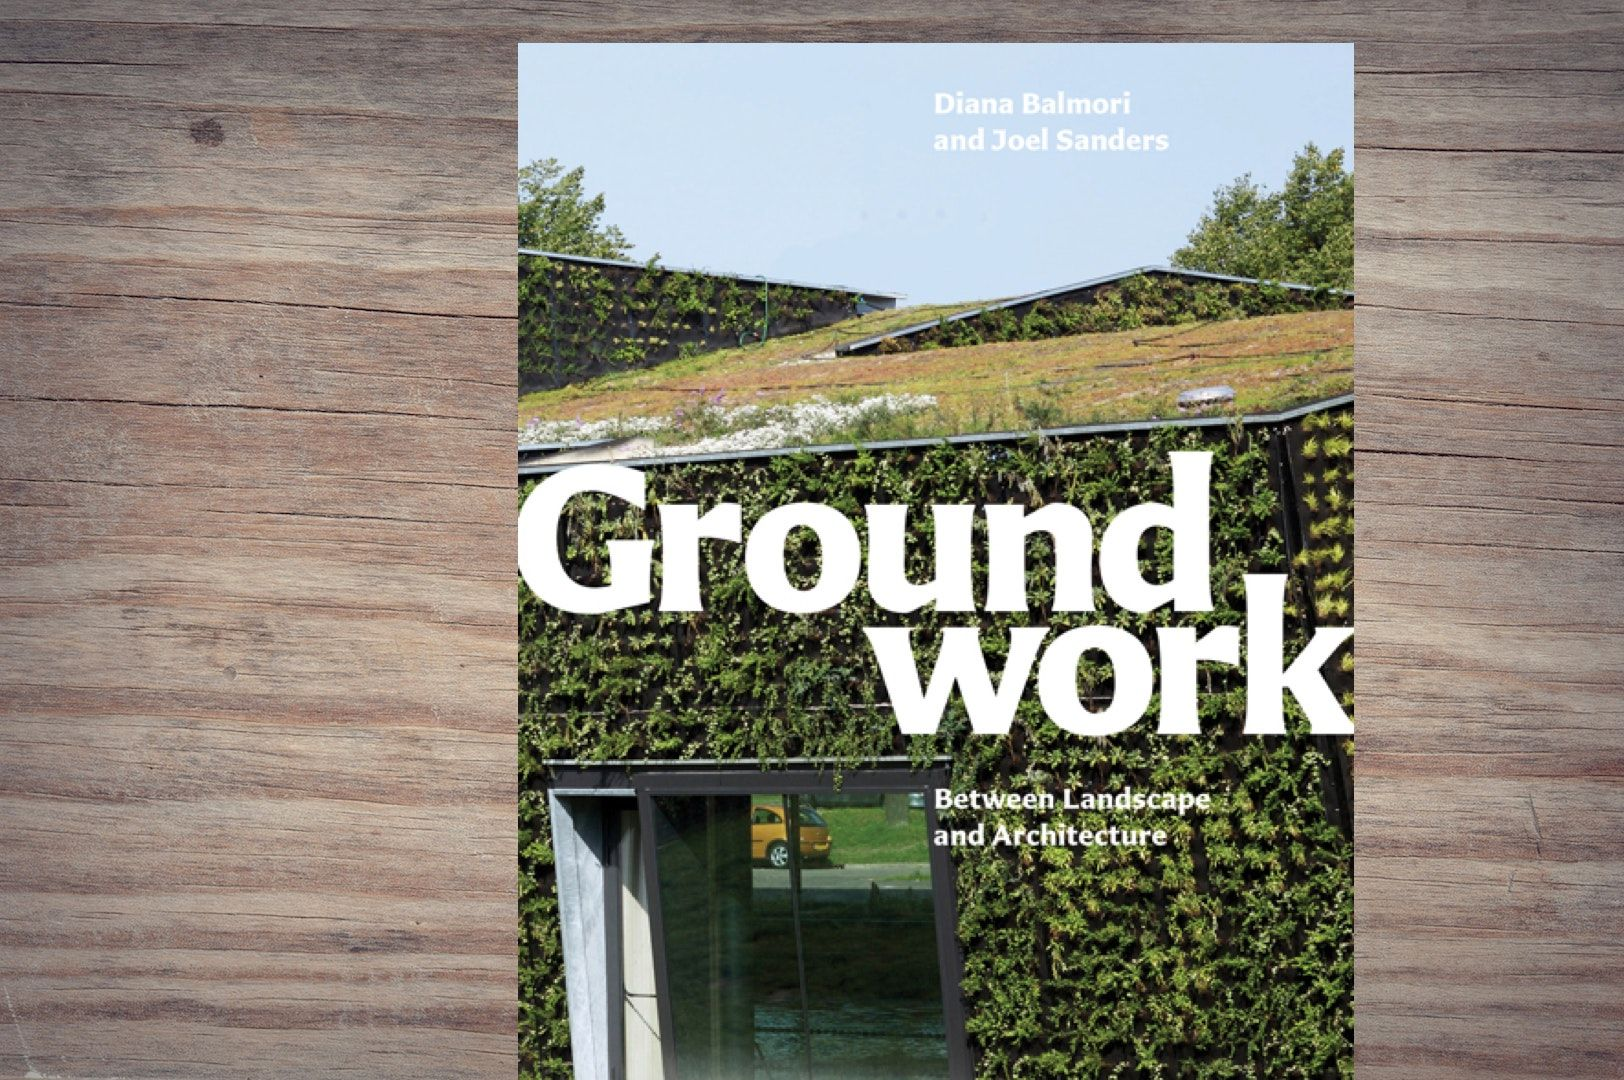 Book Review Of Groundwork Between Landscape And Architecture By Diana Balmori Joel Sanders